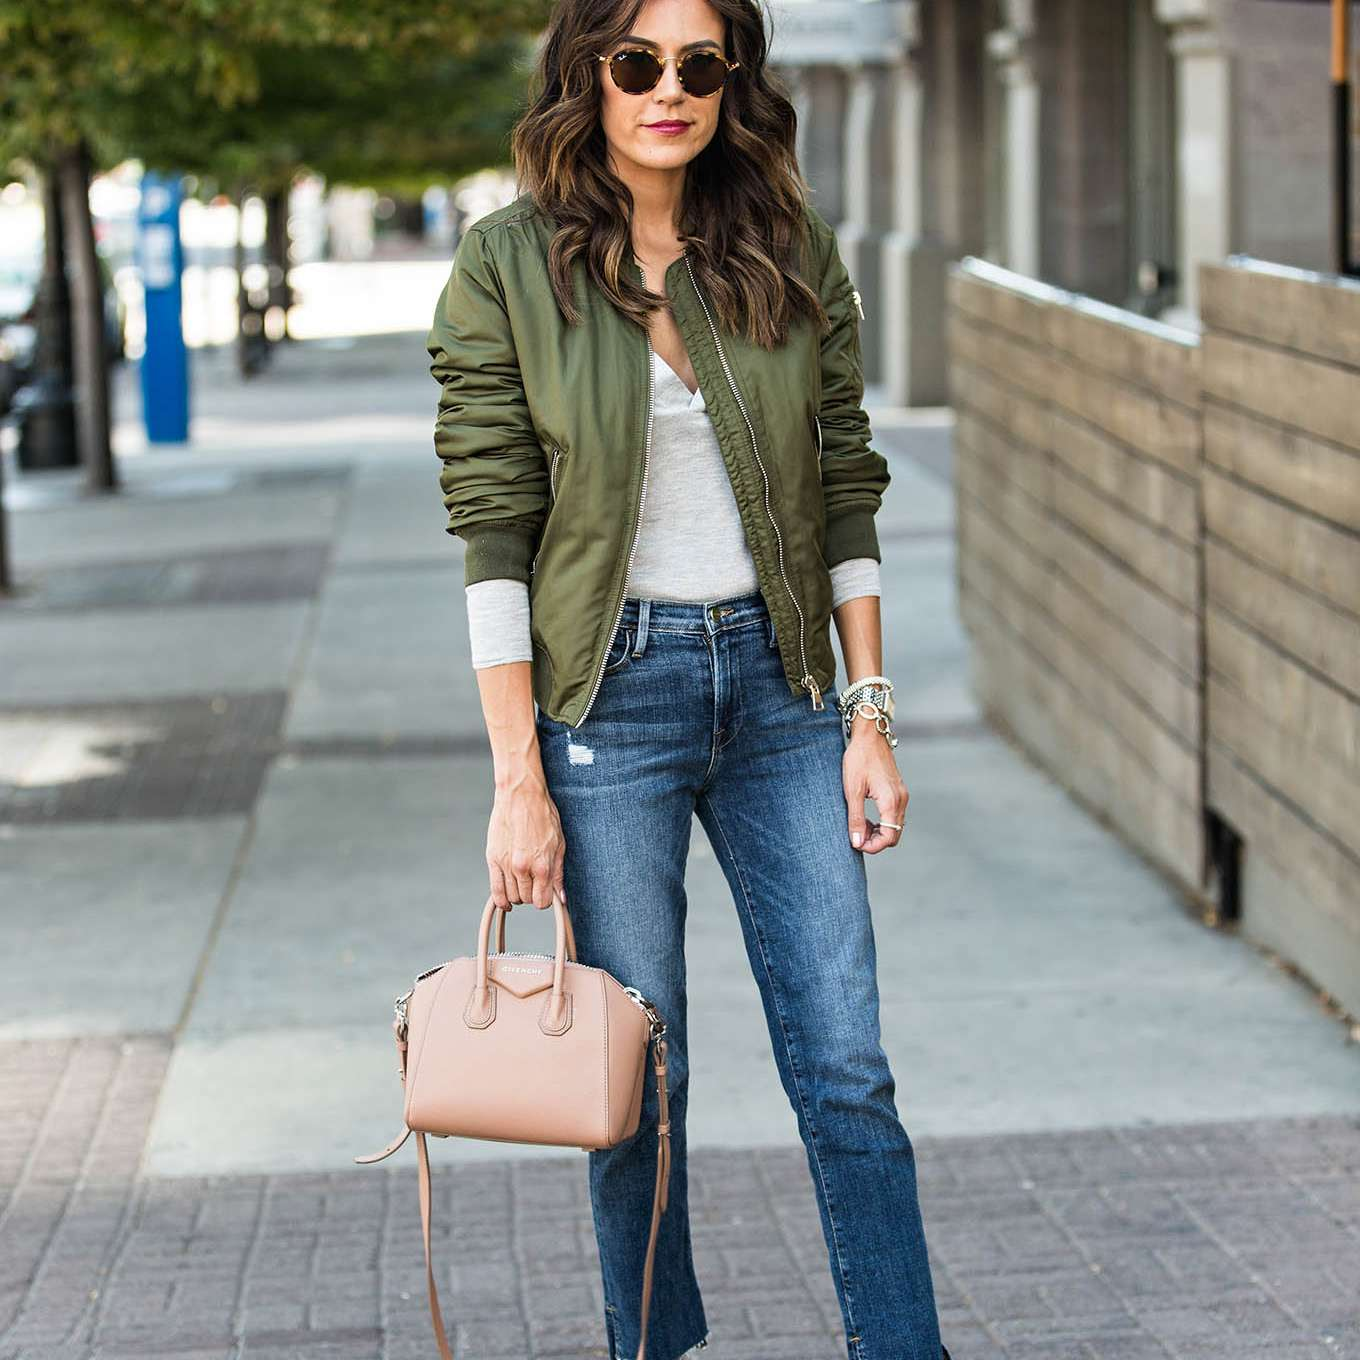 Street style woman in olive green jaket and jeans for fall